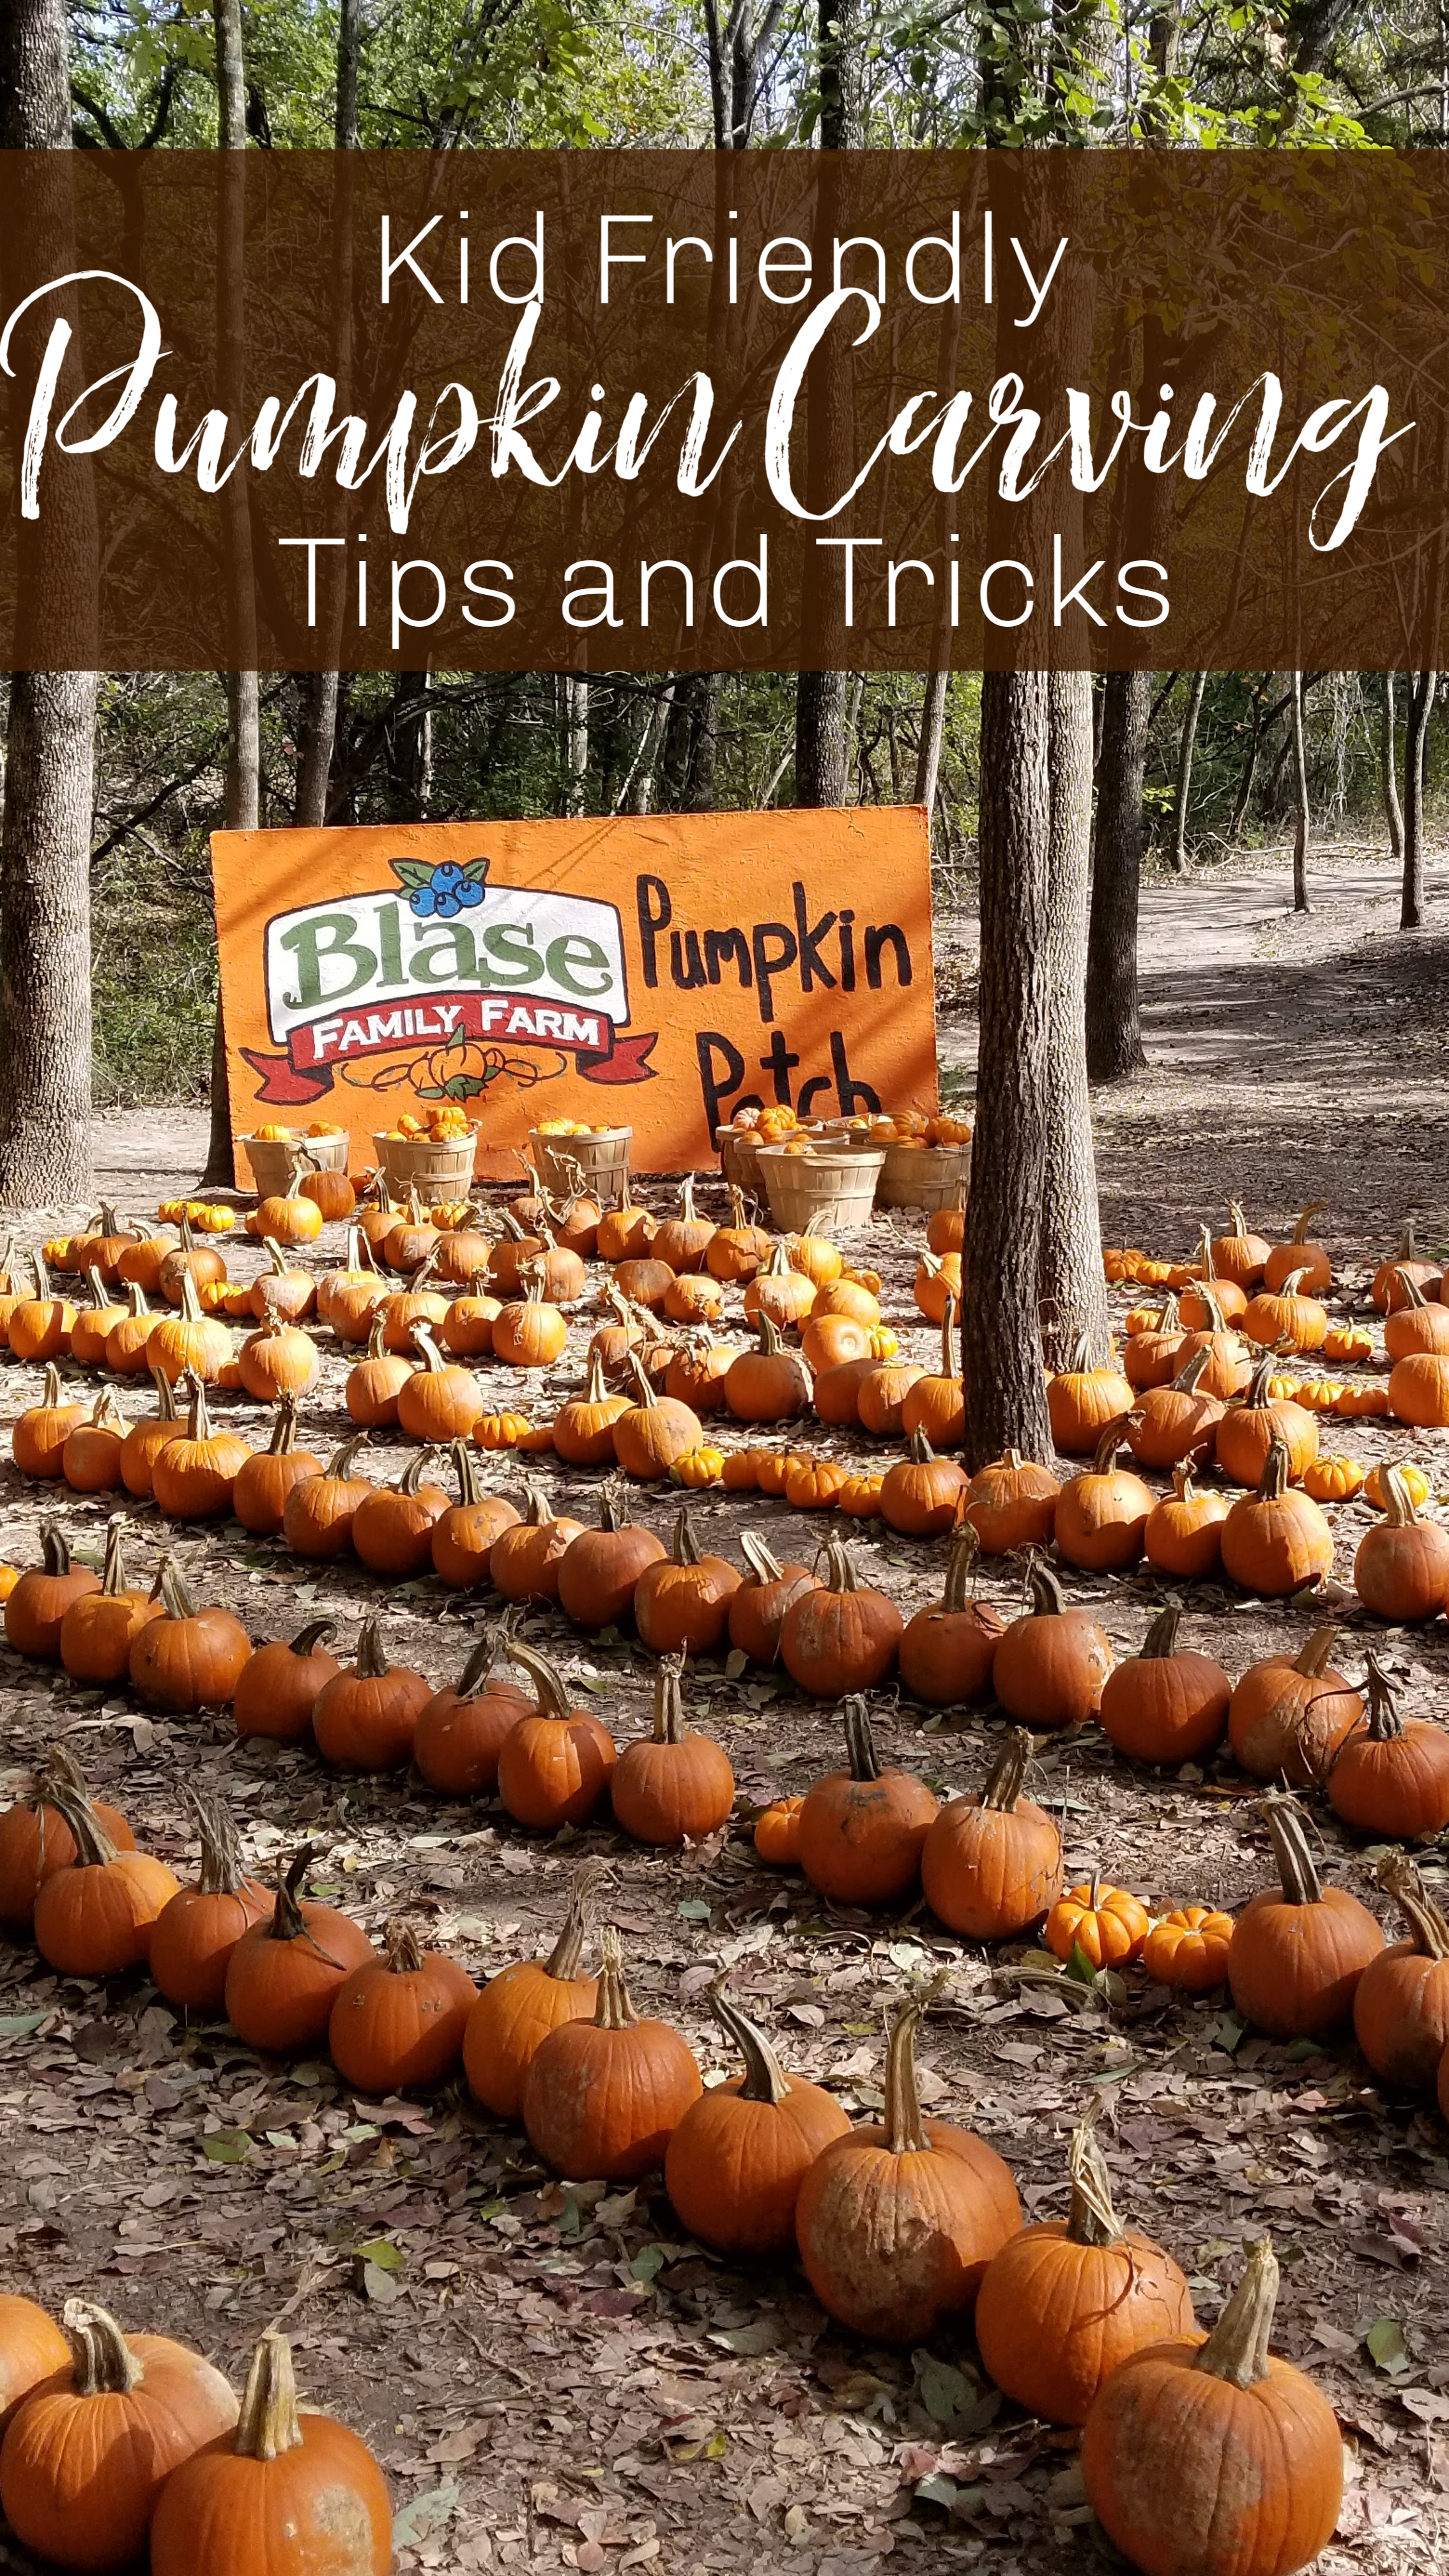 Kid-Friendly Pumpkin Carving Tips and Tricks